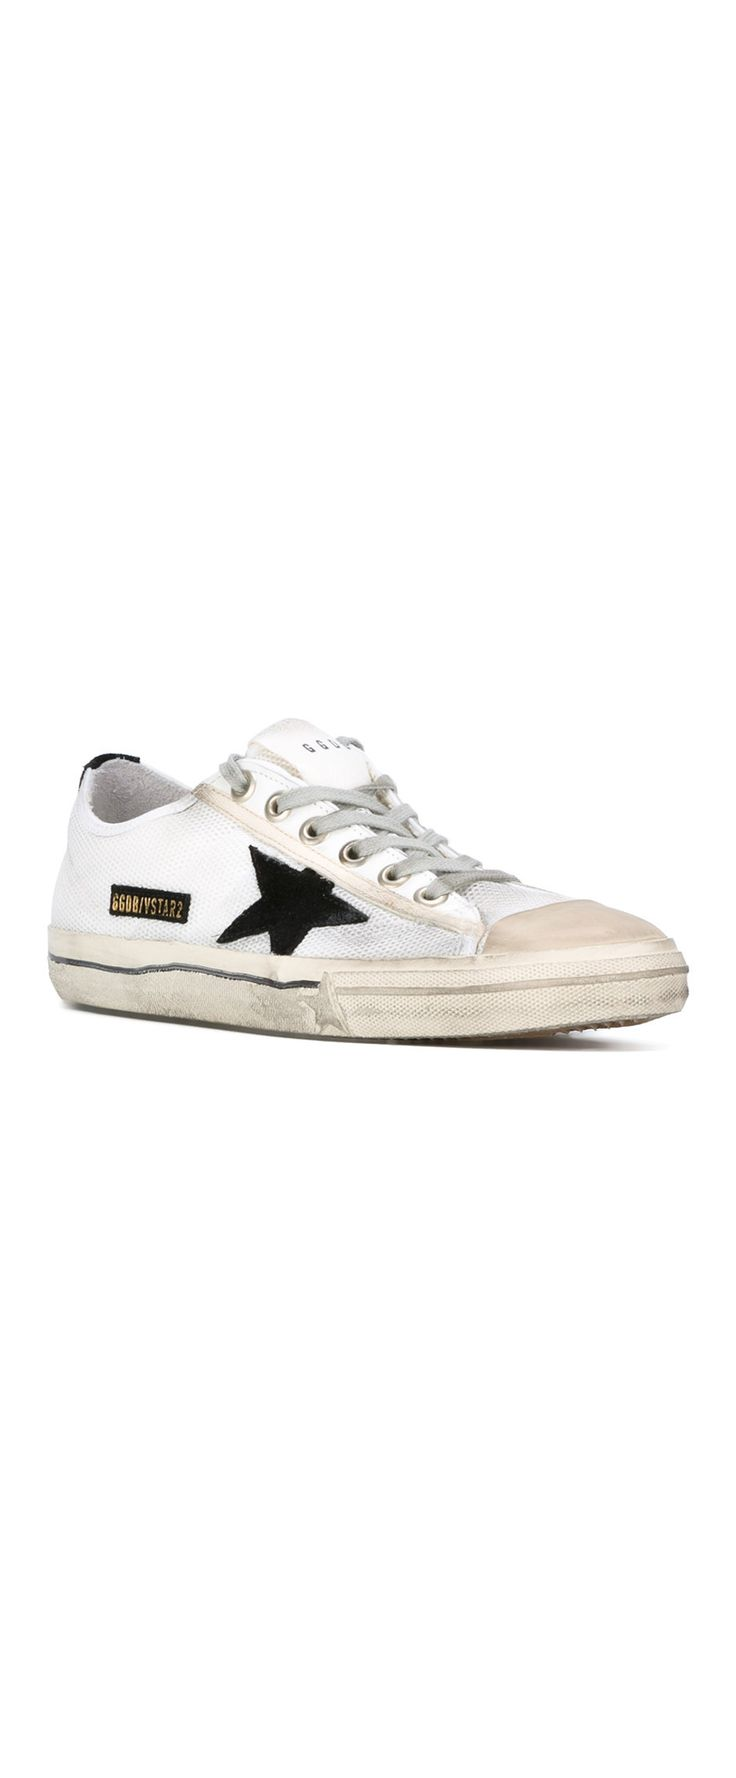 GOLDEN GOOSE DELUXE BRAND nest panel sneakers. Explore our edit of the best dressed from LFWM to inspire your summer look on Farfetch now.